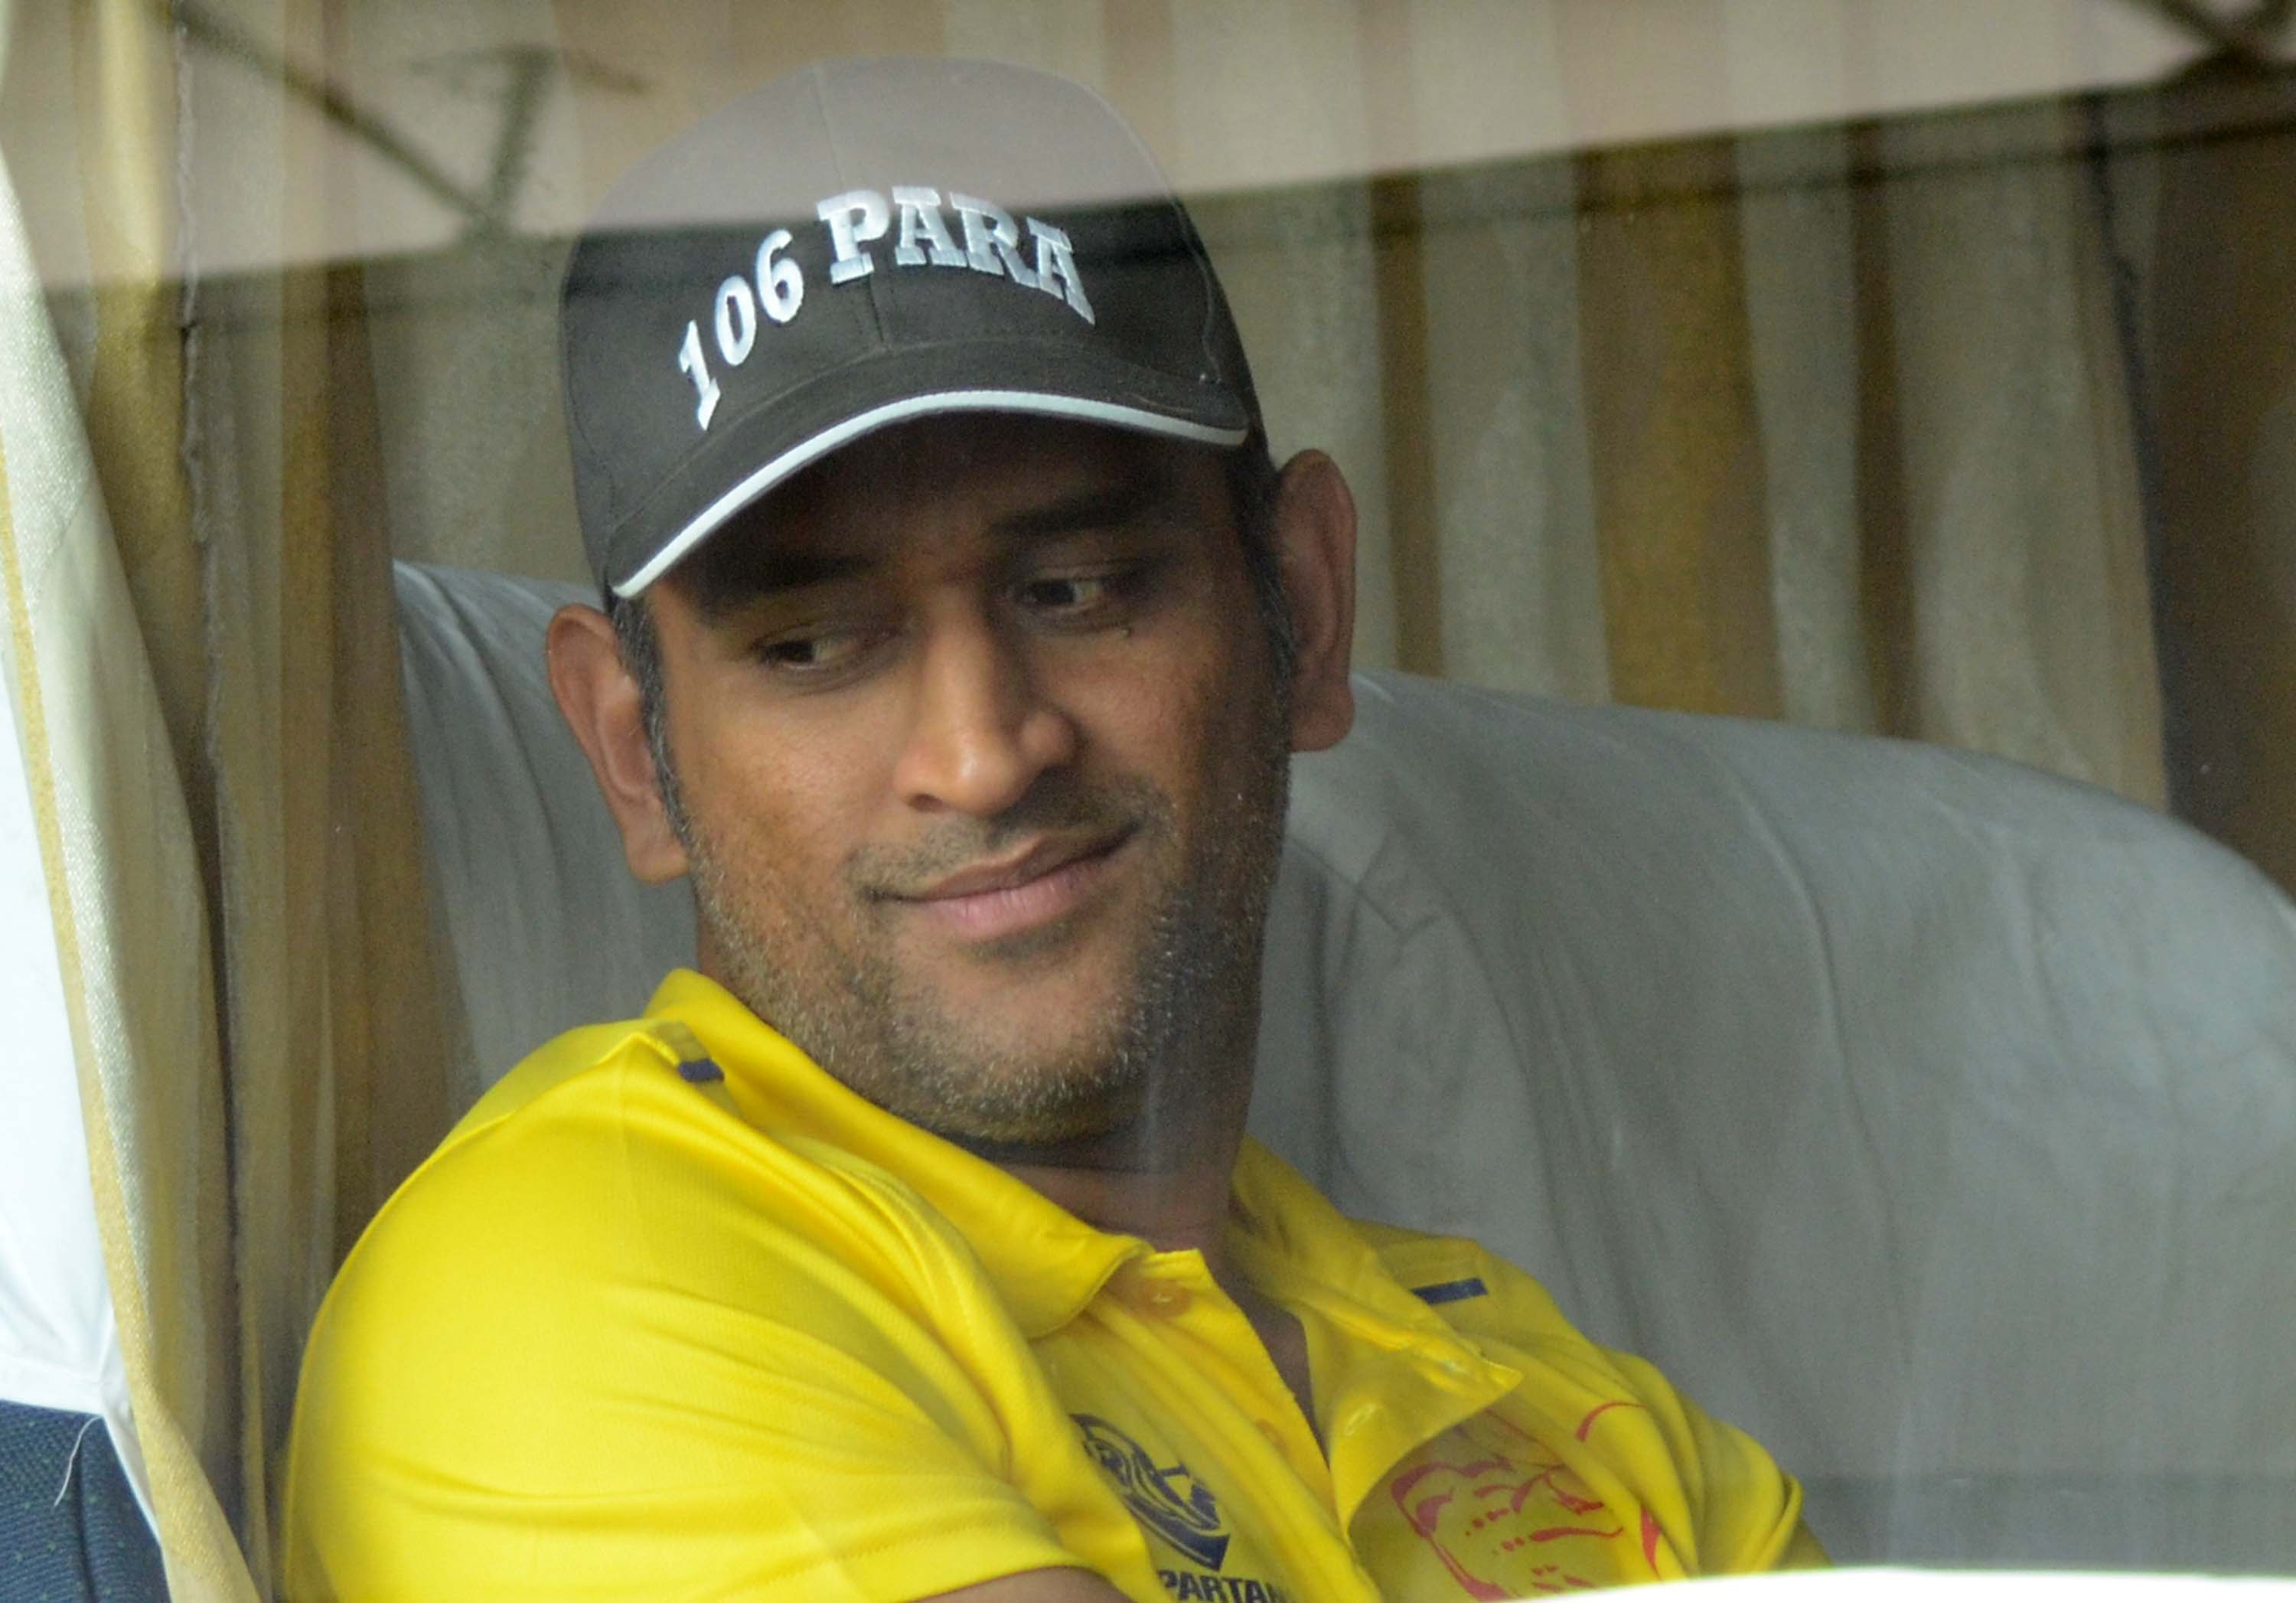 fantastic dhoni cute window side look pose free desktop background mobile pictures